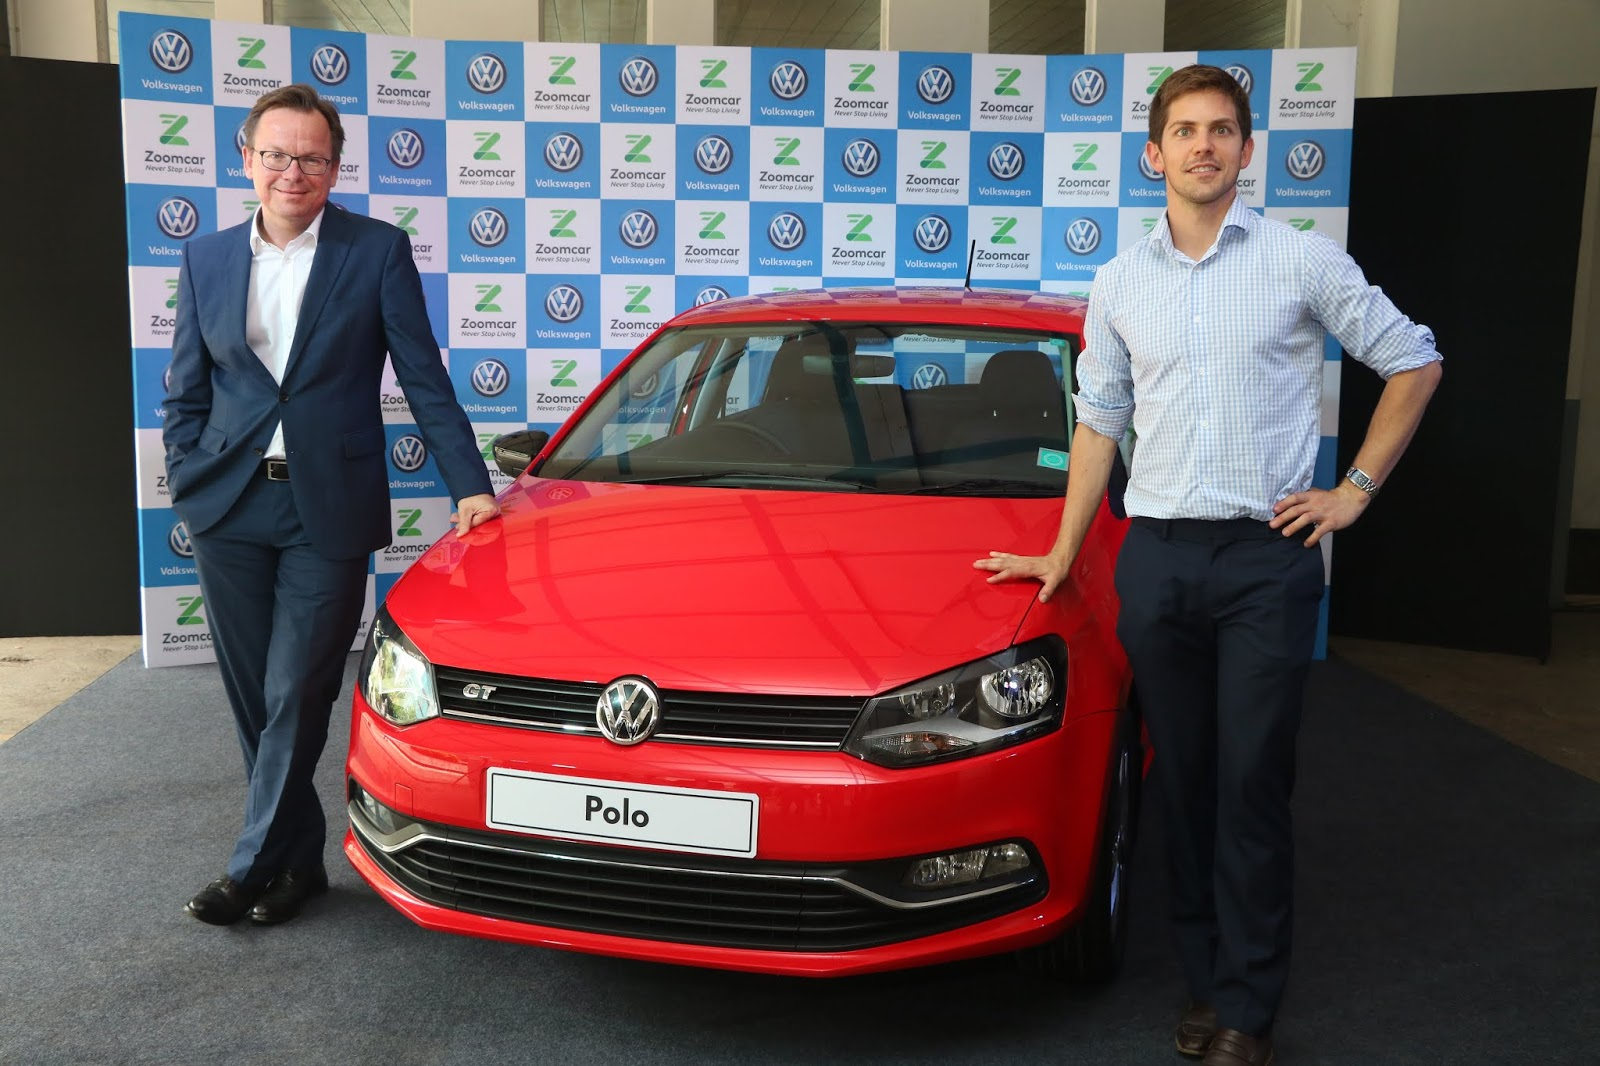 Mumbai News Network Latest News: Volkswagen partners with Zoomcar to